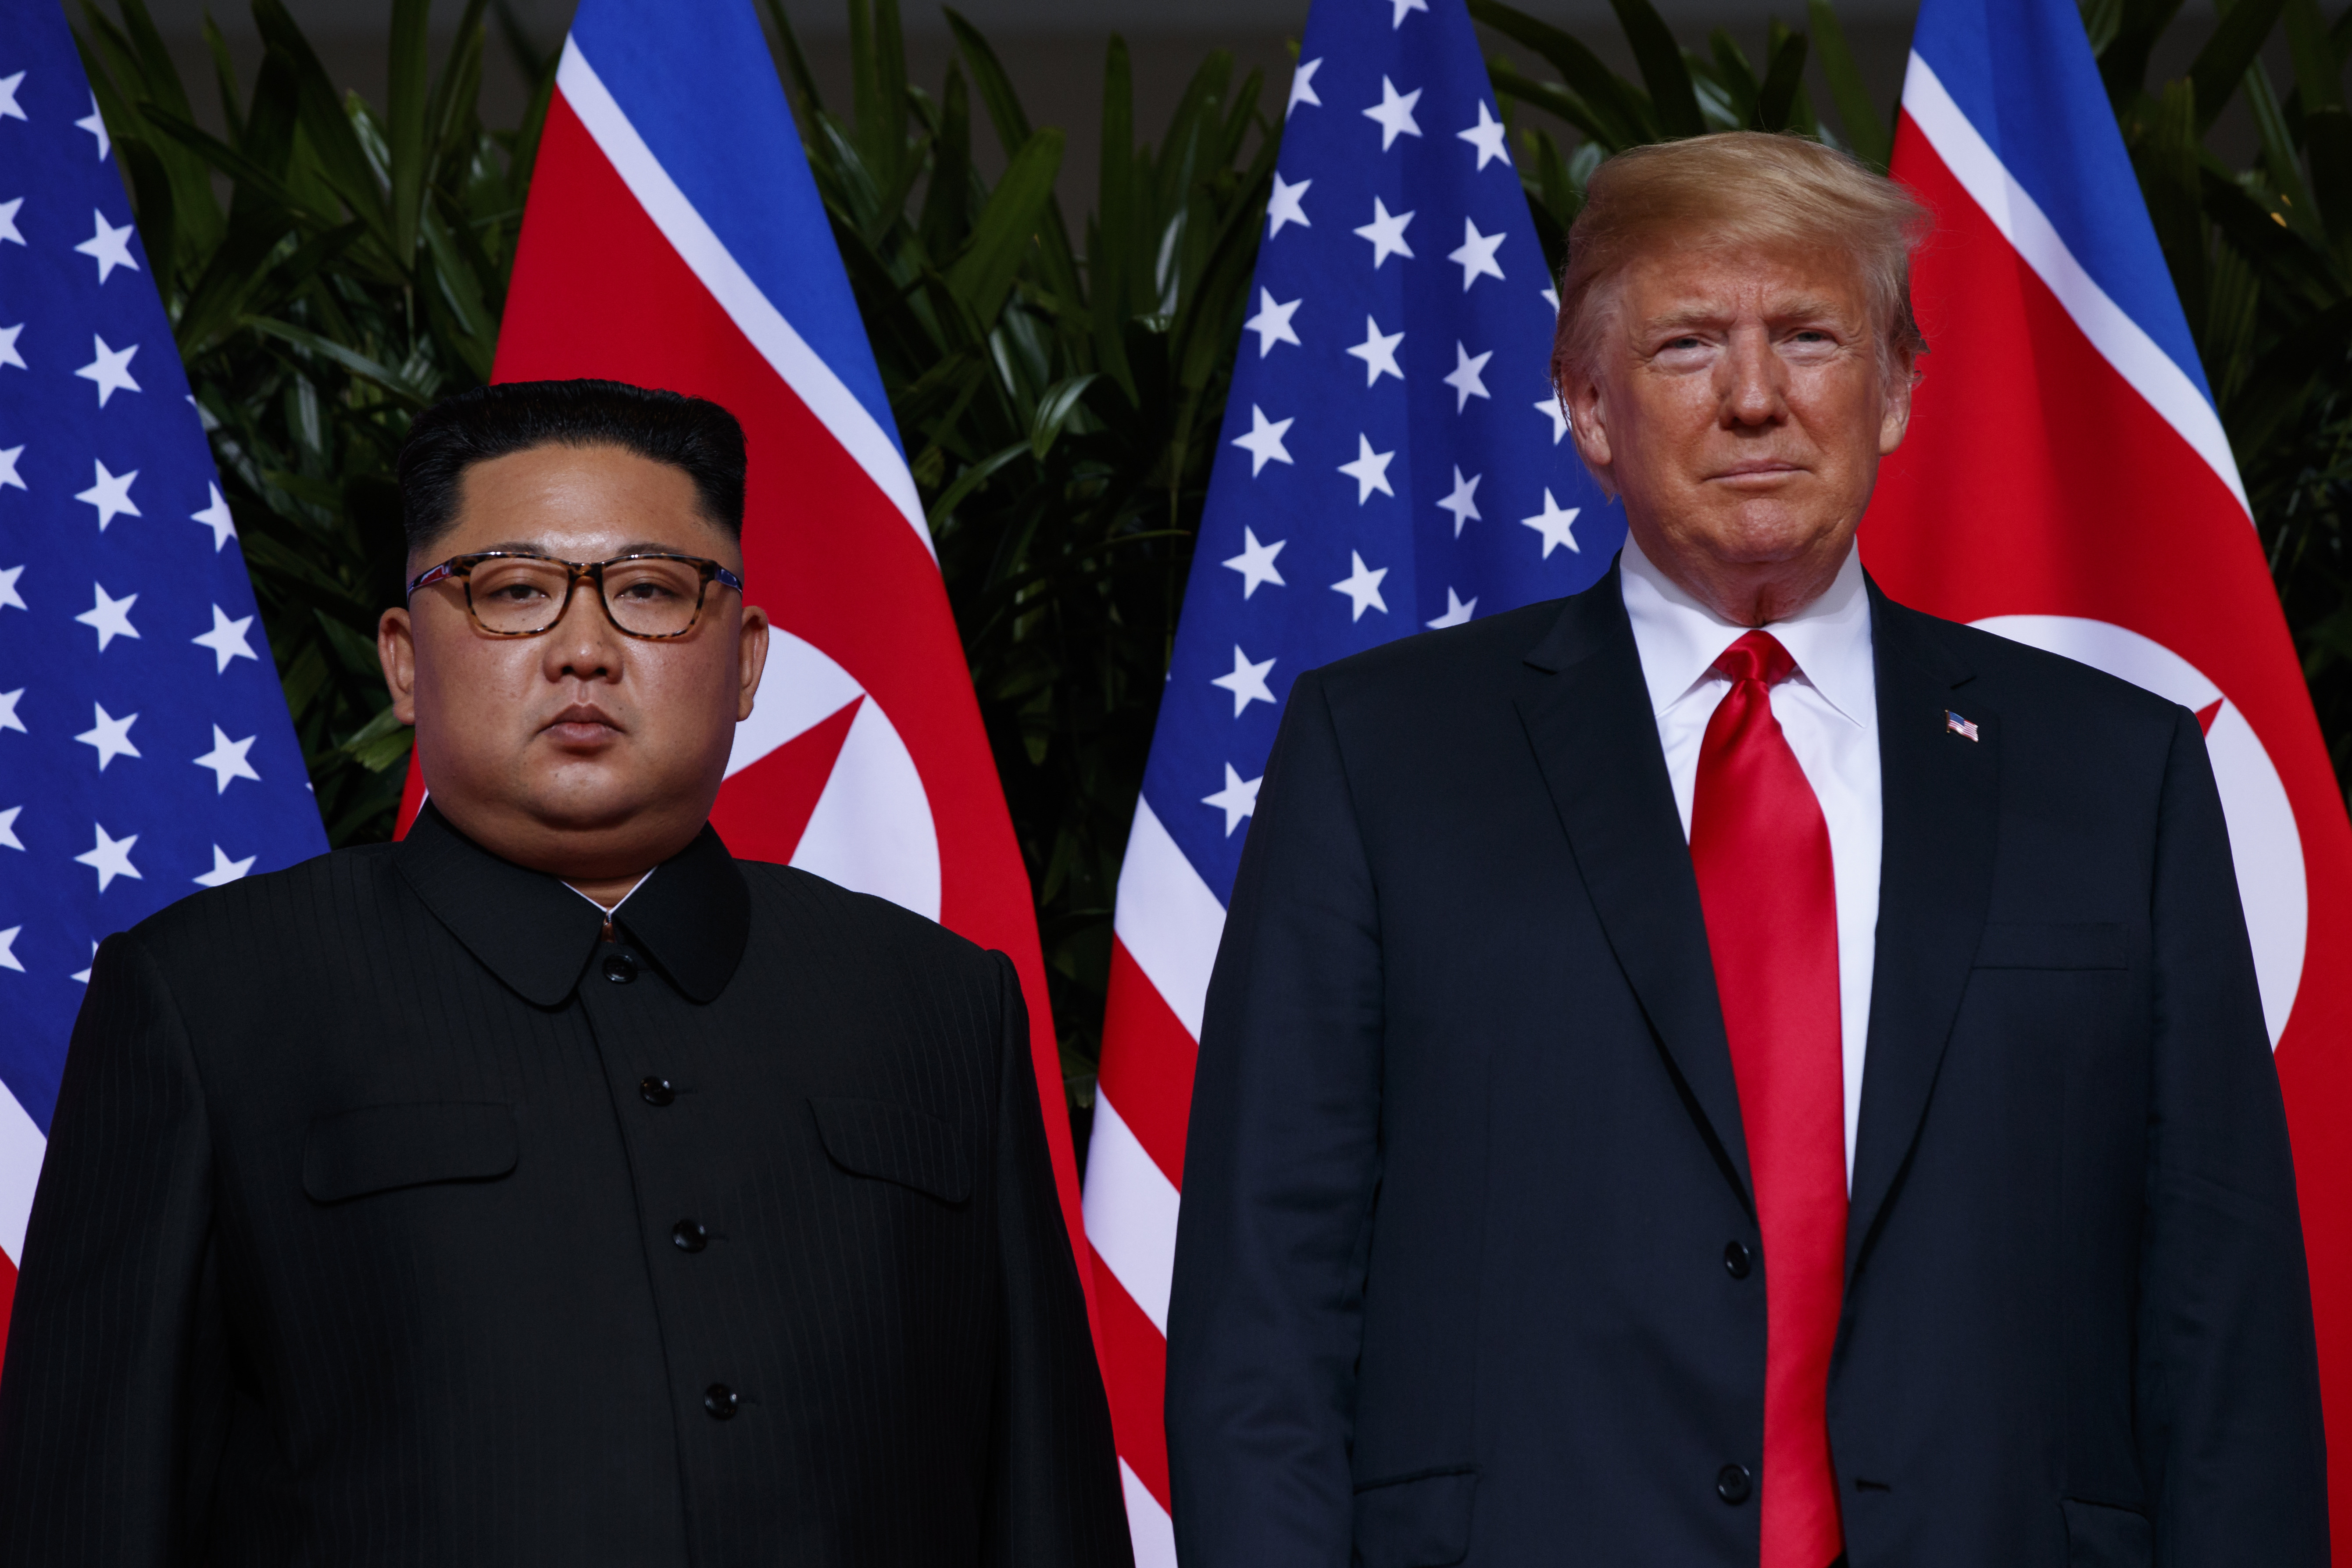 In this June 12, 2018, photo, U.S. President Donald Trump stands with North Korean leader Kim Jong Un during a meeting on Sentosa Island, in Singapore. For some observers, the nightmare result of the second summit between Trump and Kim is an ill-considered deal that allows North Korea to get everything it wants while giving up very little, even as the mercurial leaders trumpet a blockbuster nuclear success.